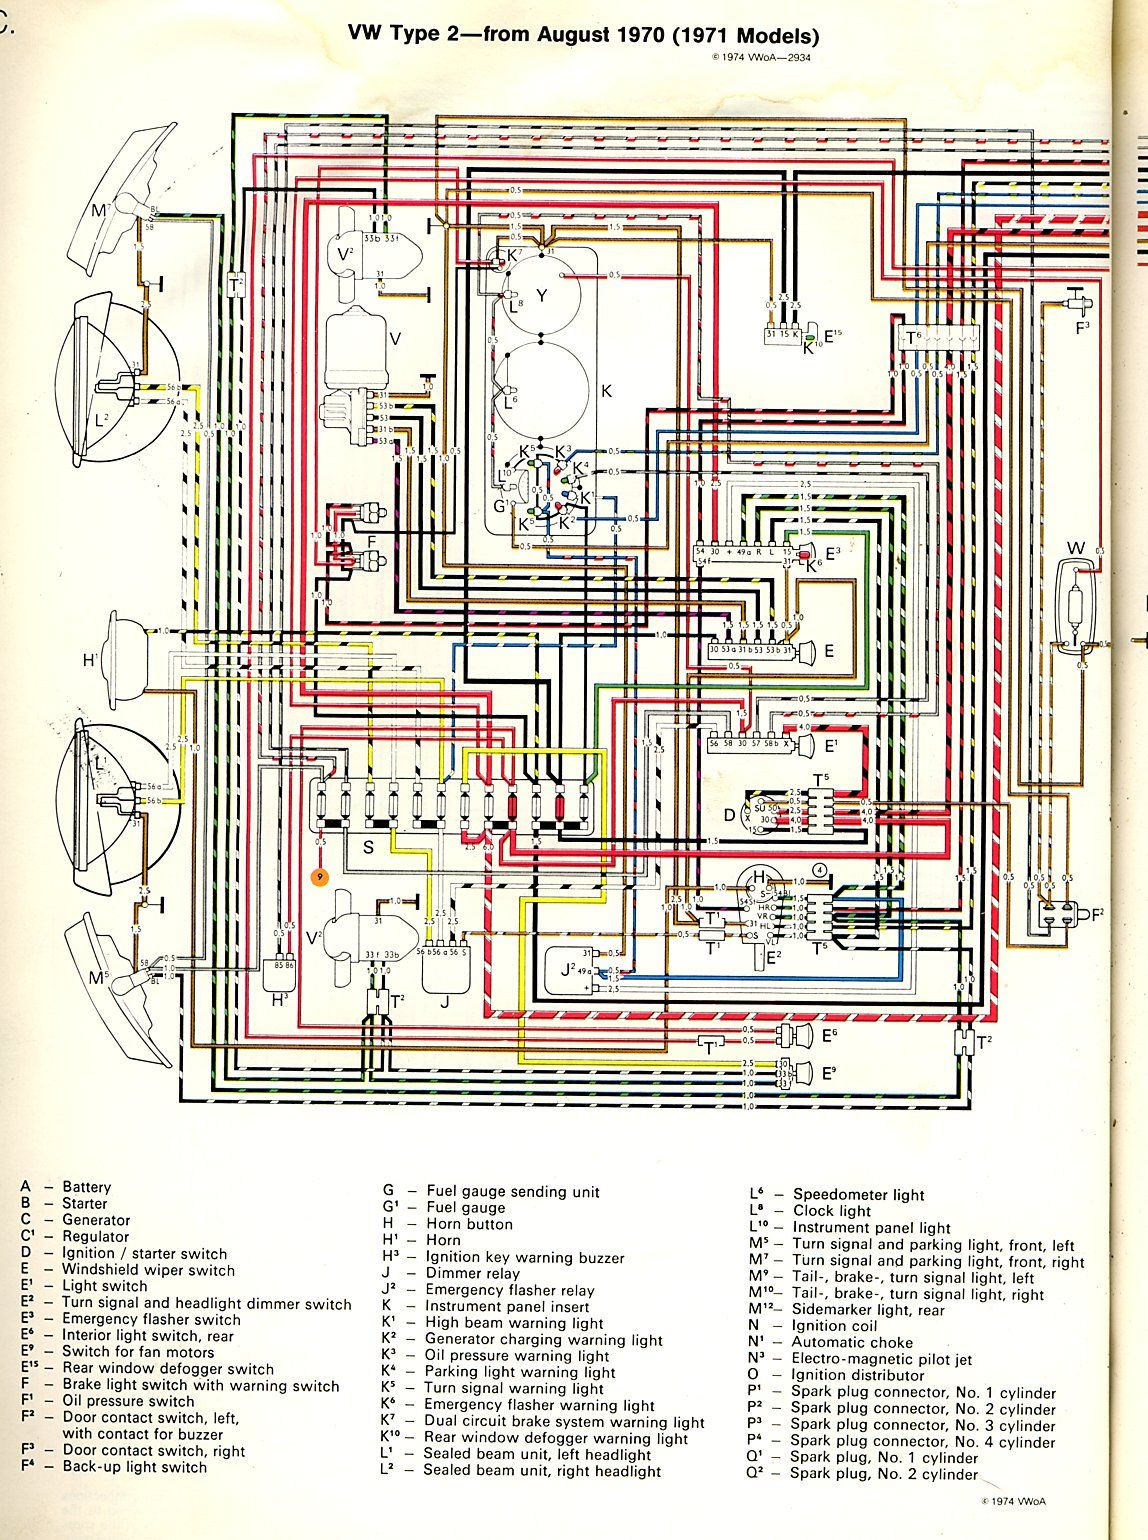 1971 bus wiring diagram thegoldenbug com stuff to try vw bus 1971 VW Bus Specs